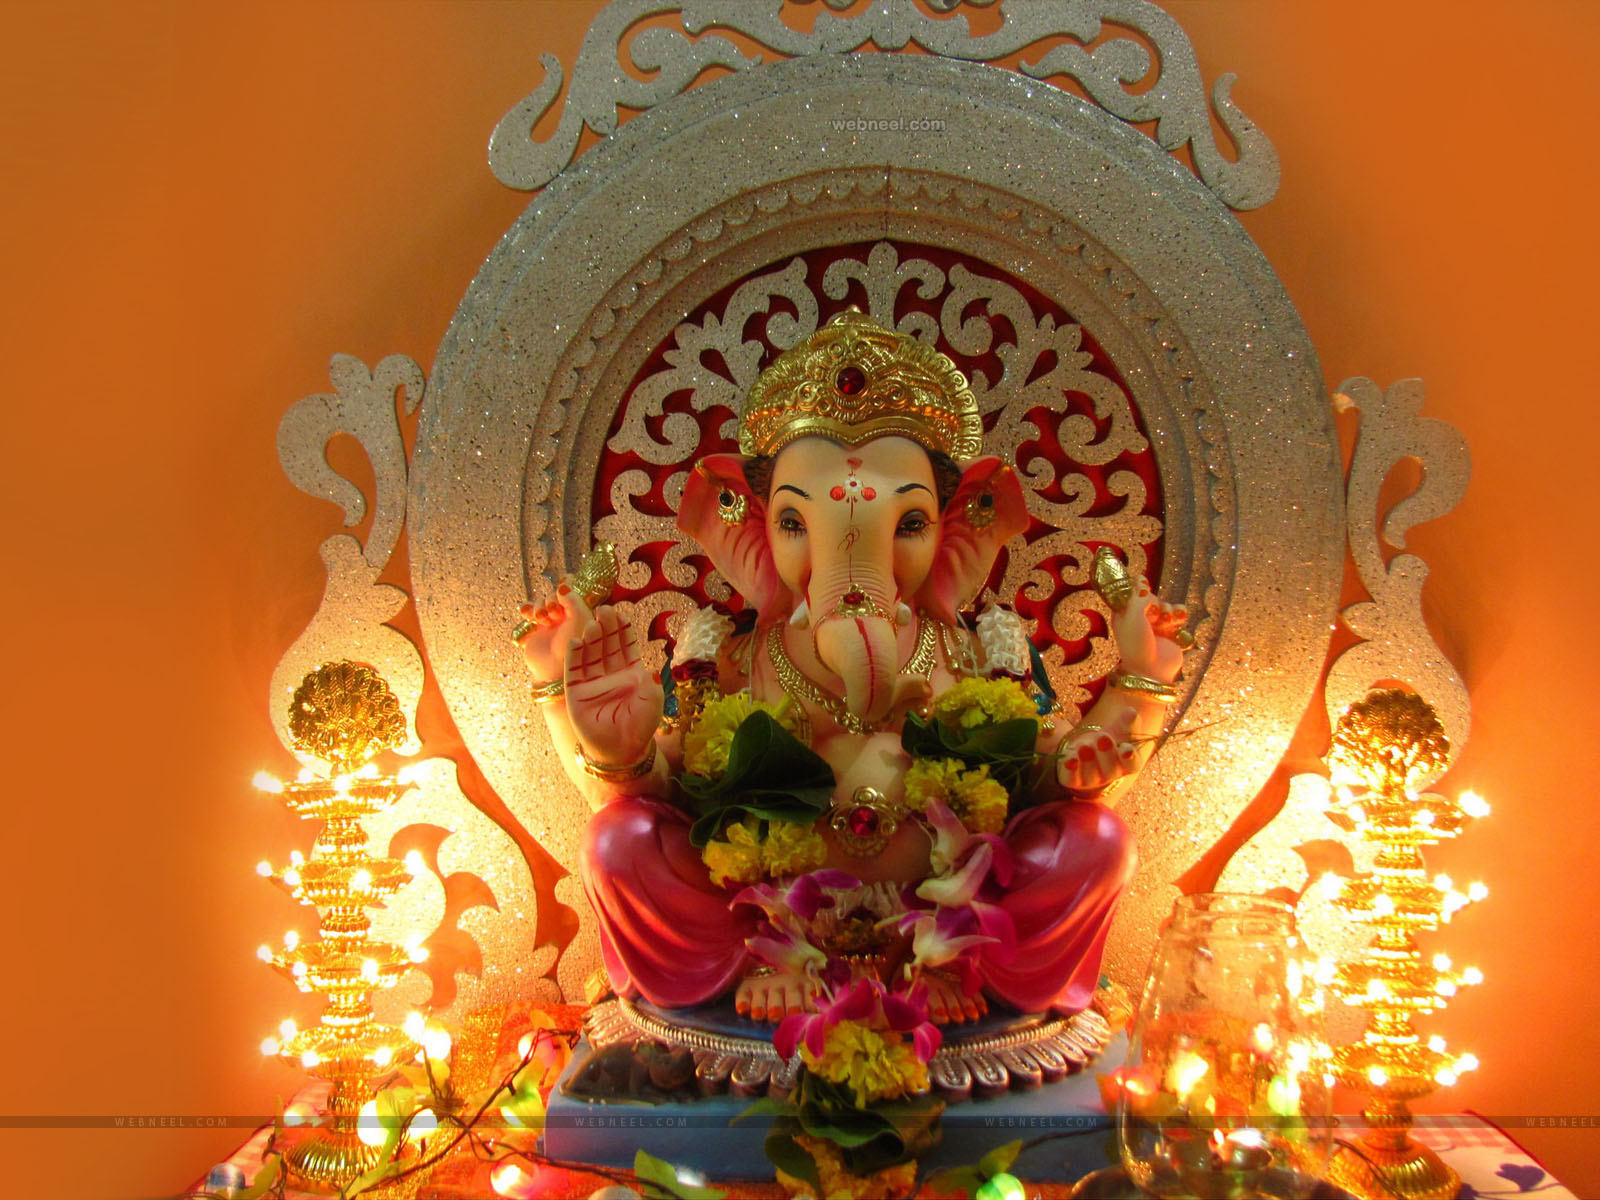 Simple Wallpaper Angry Ganpati - 1-ganesh-chathurthi-photo-raman-sharma  Collection_497154      .jpg